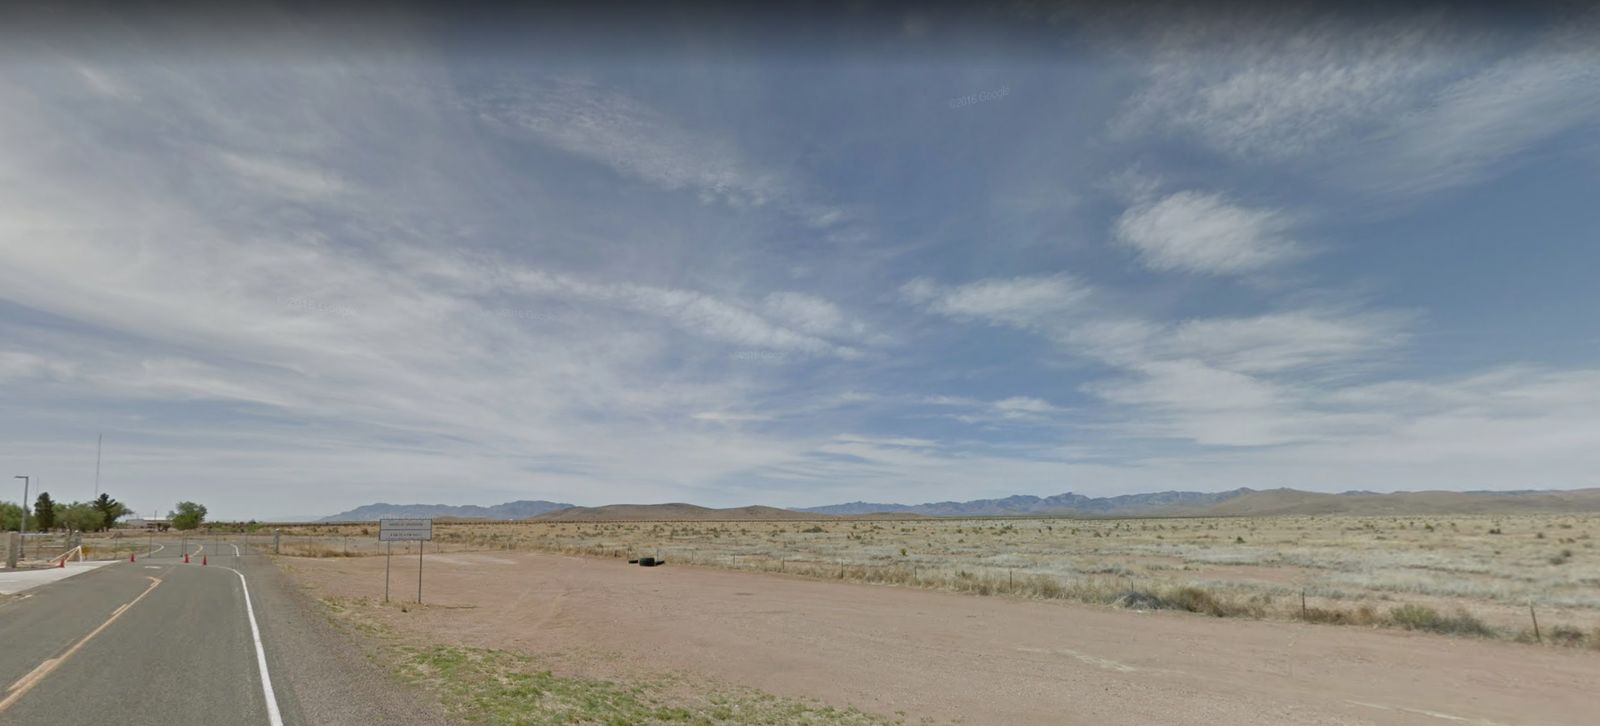 This photo shows the expansive desert area surrounding the Antelope Wells port of entry. (Credit: Google Maps)